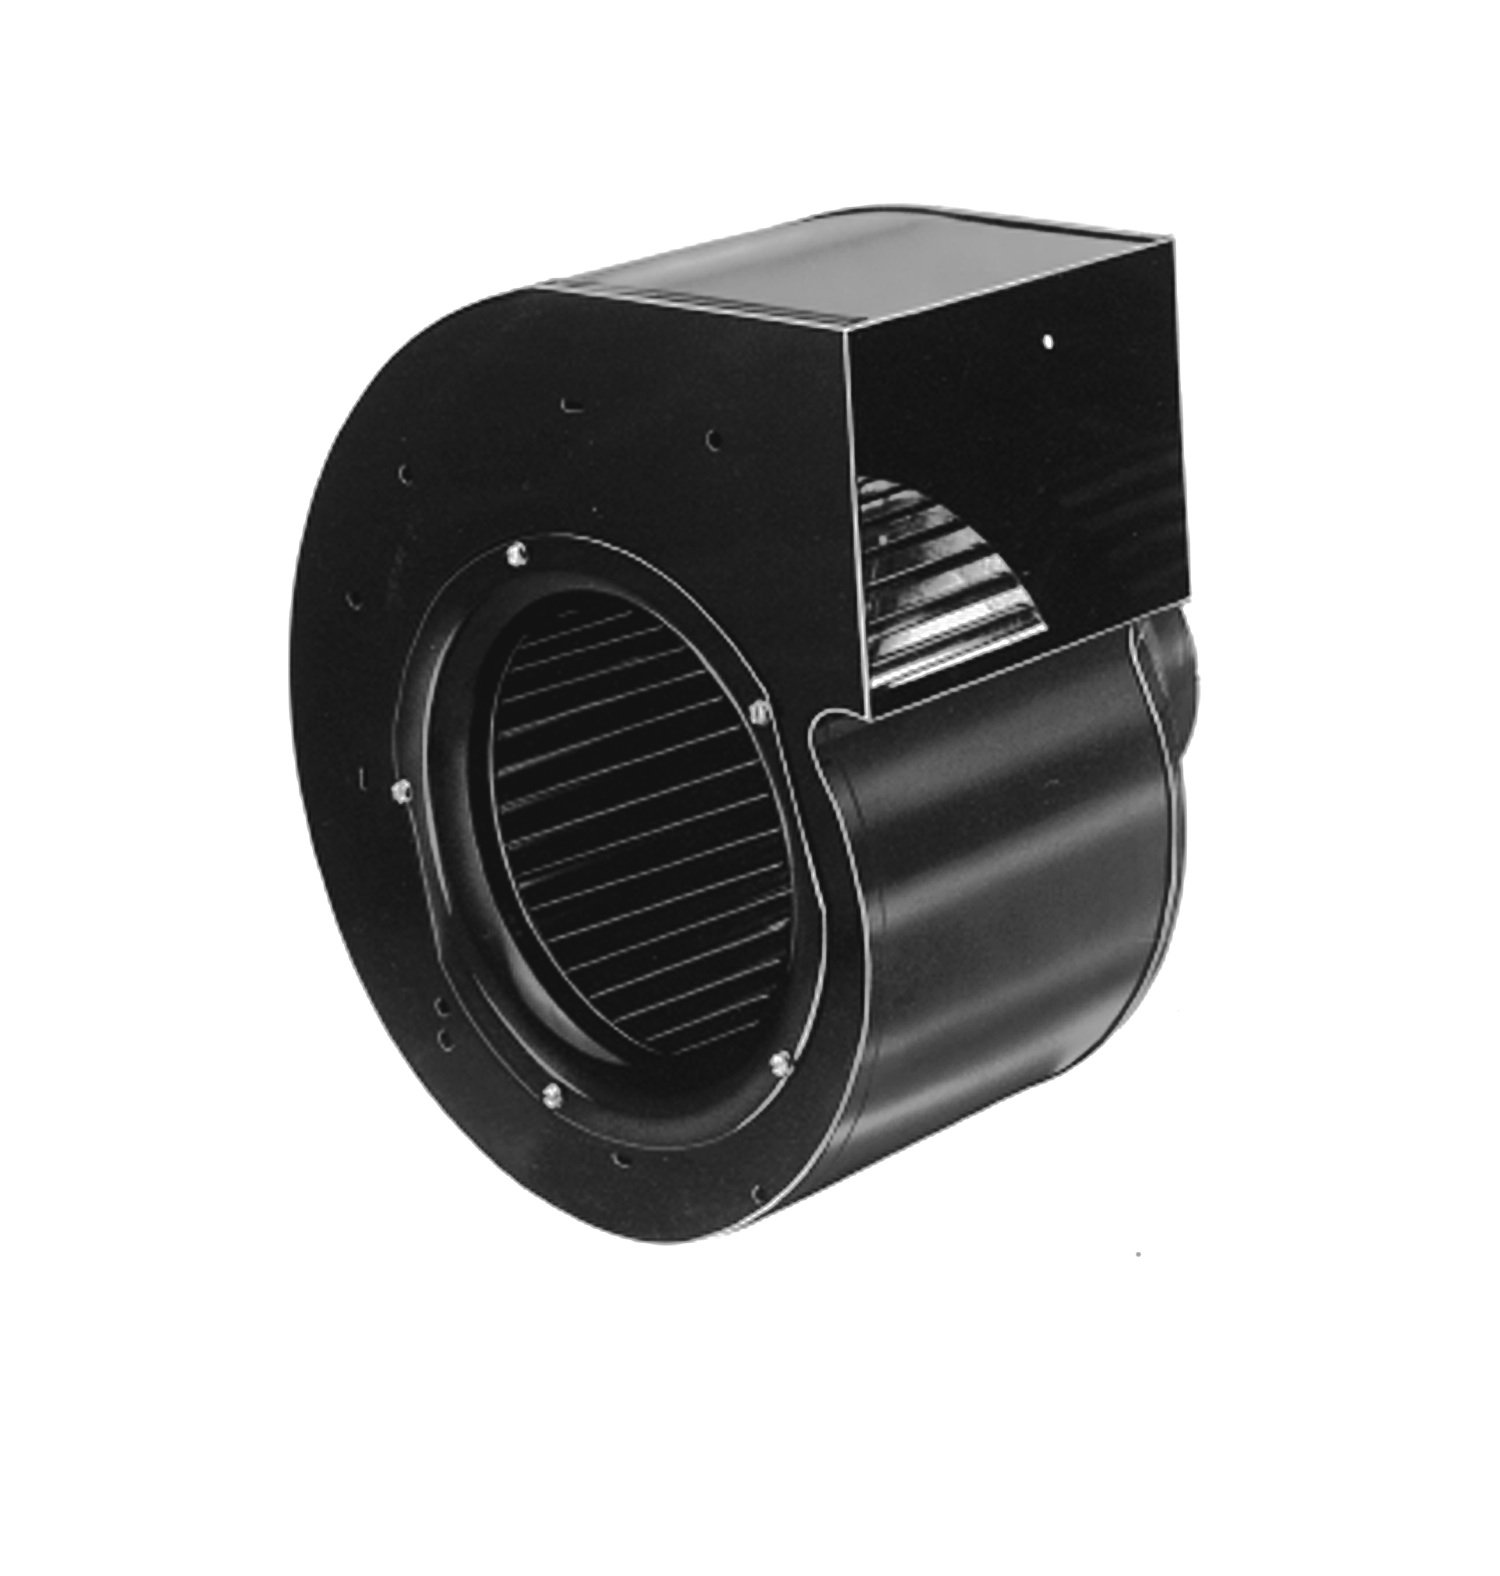 Fasco A1000 Centrifugal Blower with Sleeve Bearing, 1,100/1,100 rpm, 115/230V, 60Hz, 4-2.9/2-1.4 amps